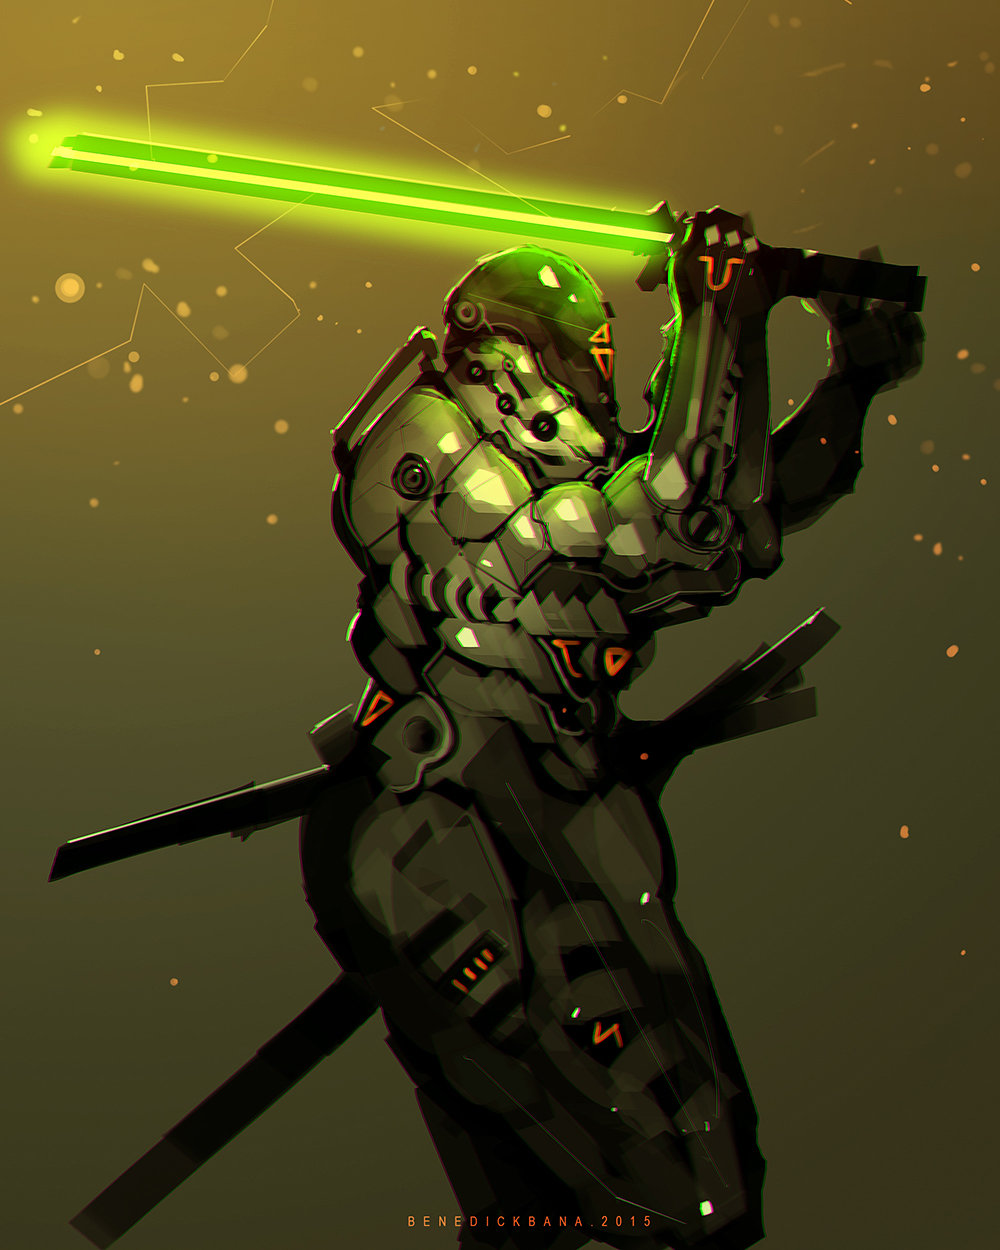 Benedick bana final thrust lores